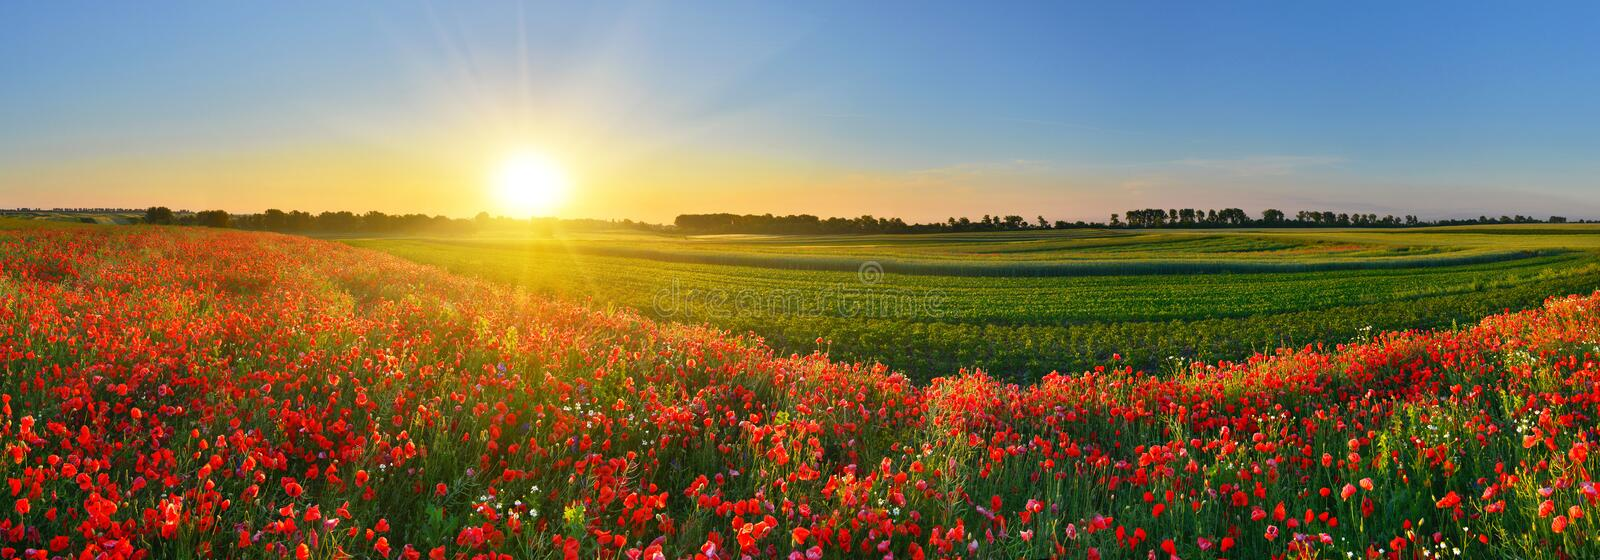 Rising sun above the field of red poppies in summer. Rural landscape at sunrise stock images